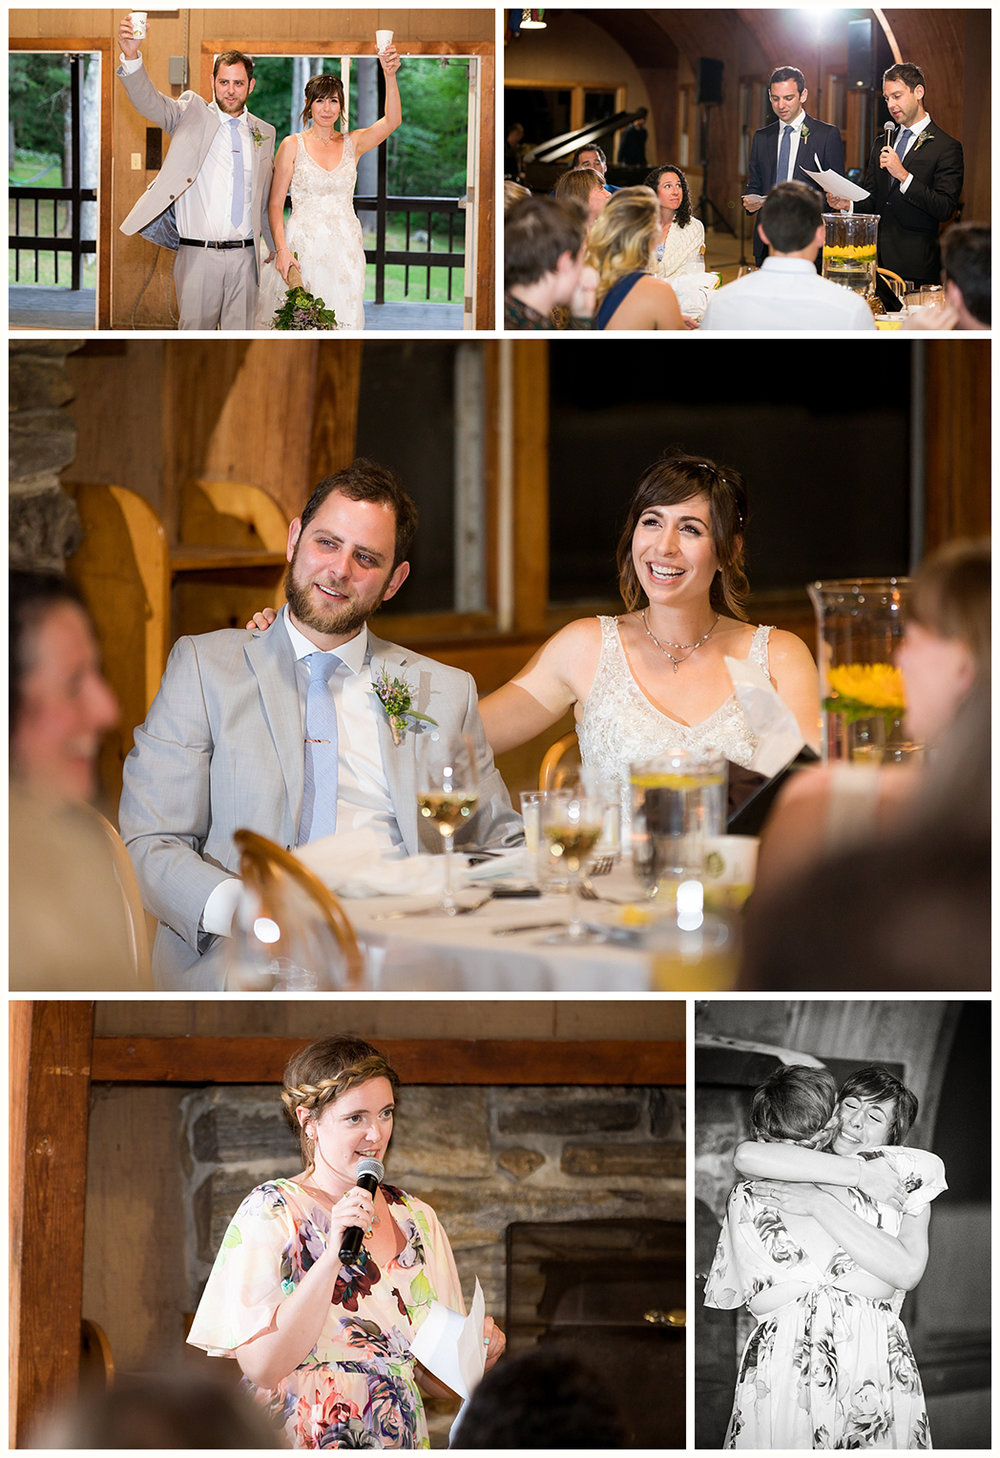 ChelseaWillCampBecketWedding_18.jpg